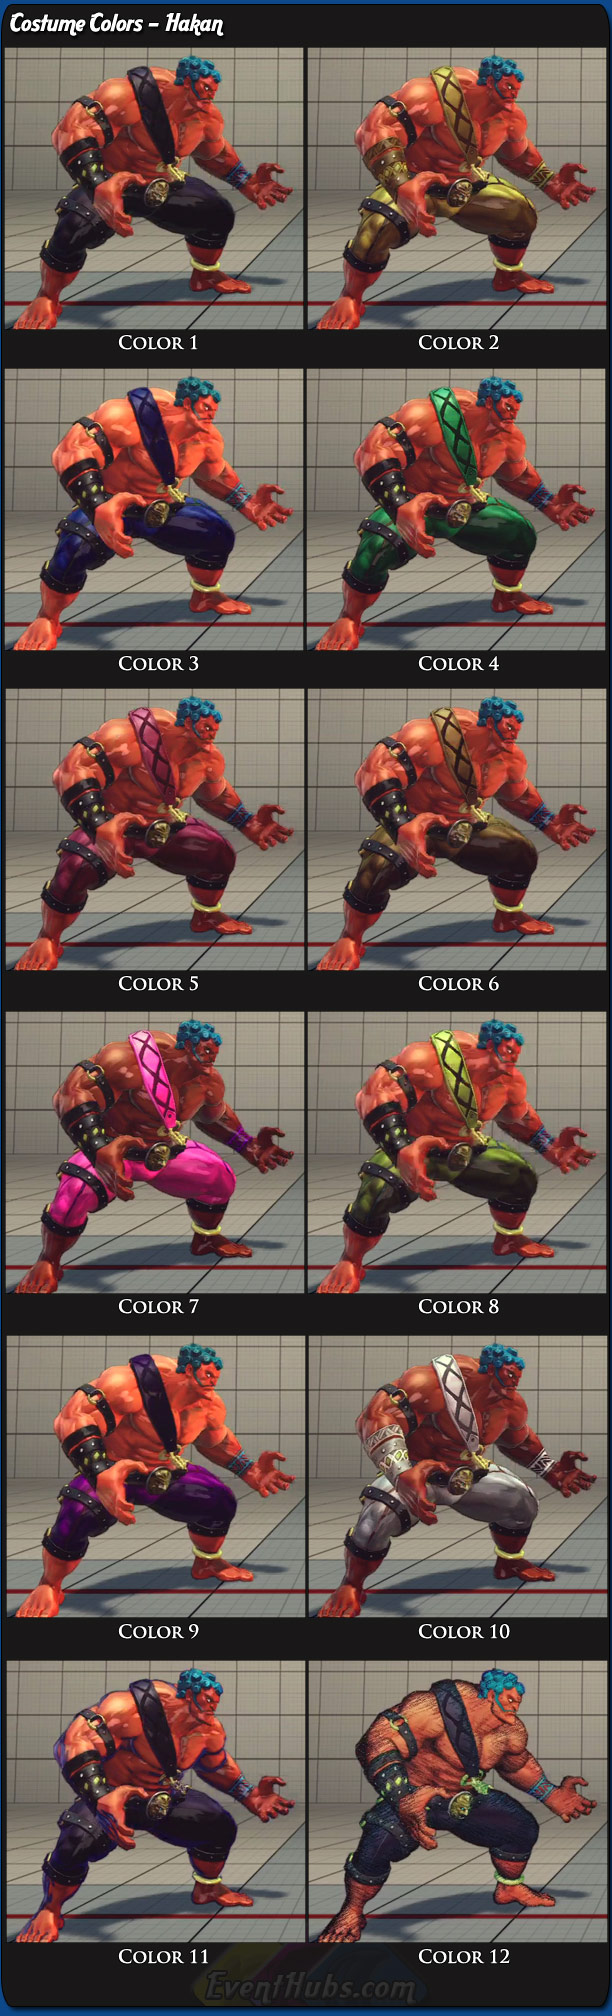 Hakan's main costume colors for Super Street Fighter 4